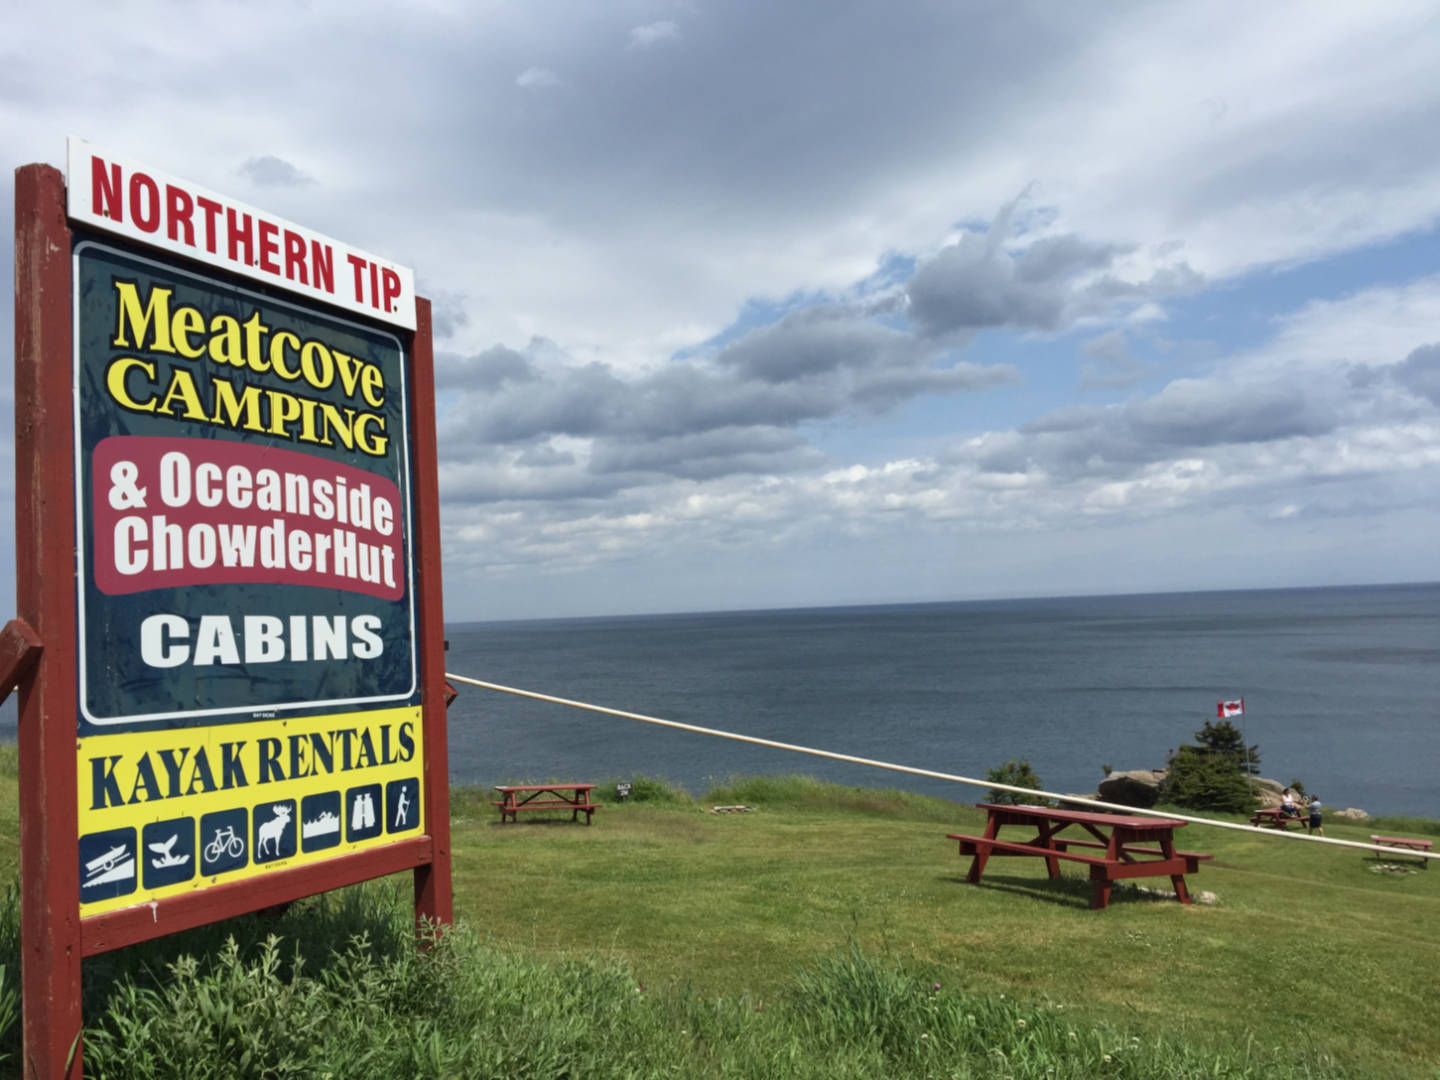 A photo of the sign and picnic tables at Meat Cove campground